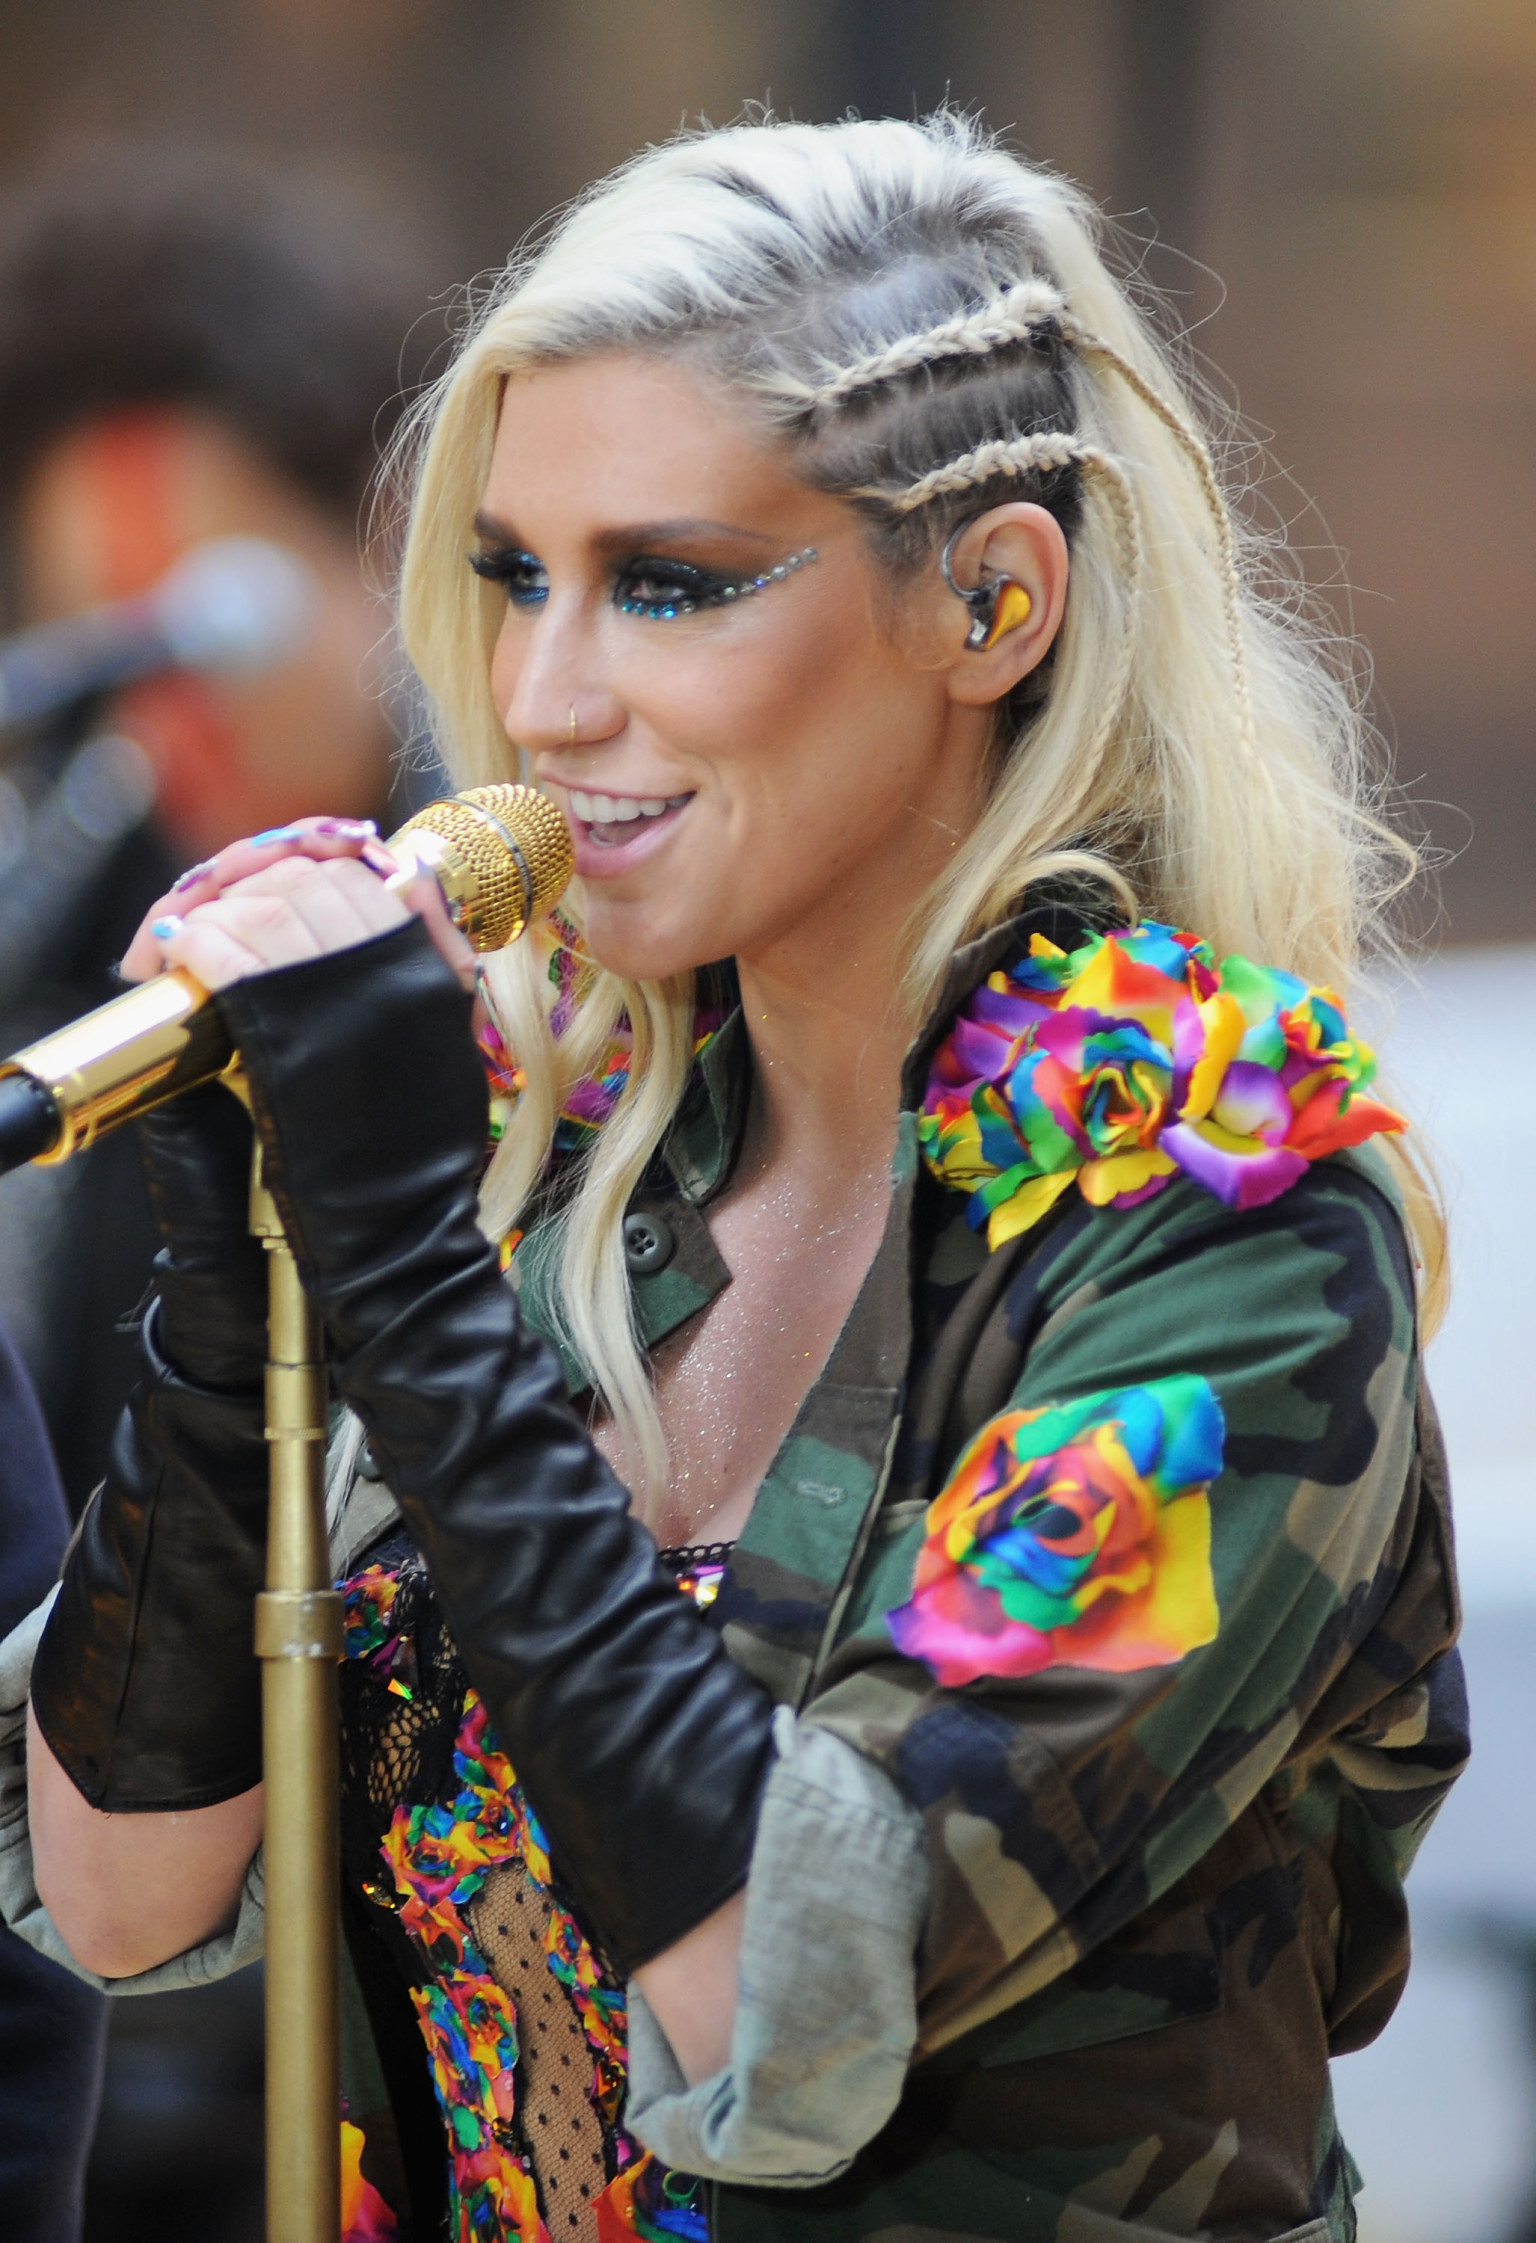 Lincoln Nebraska News >> Westboro Baptists Owned By Kesha's Dancers (VIDEO) | HuffPost